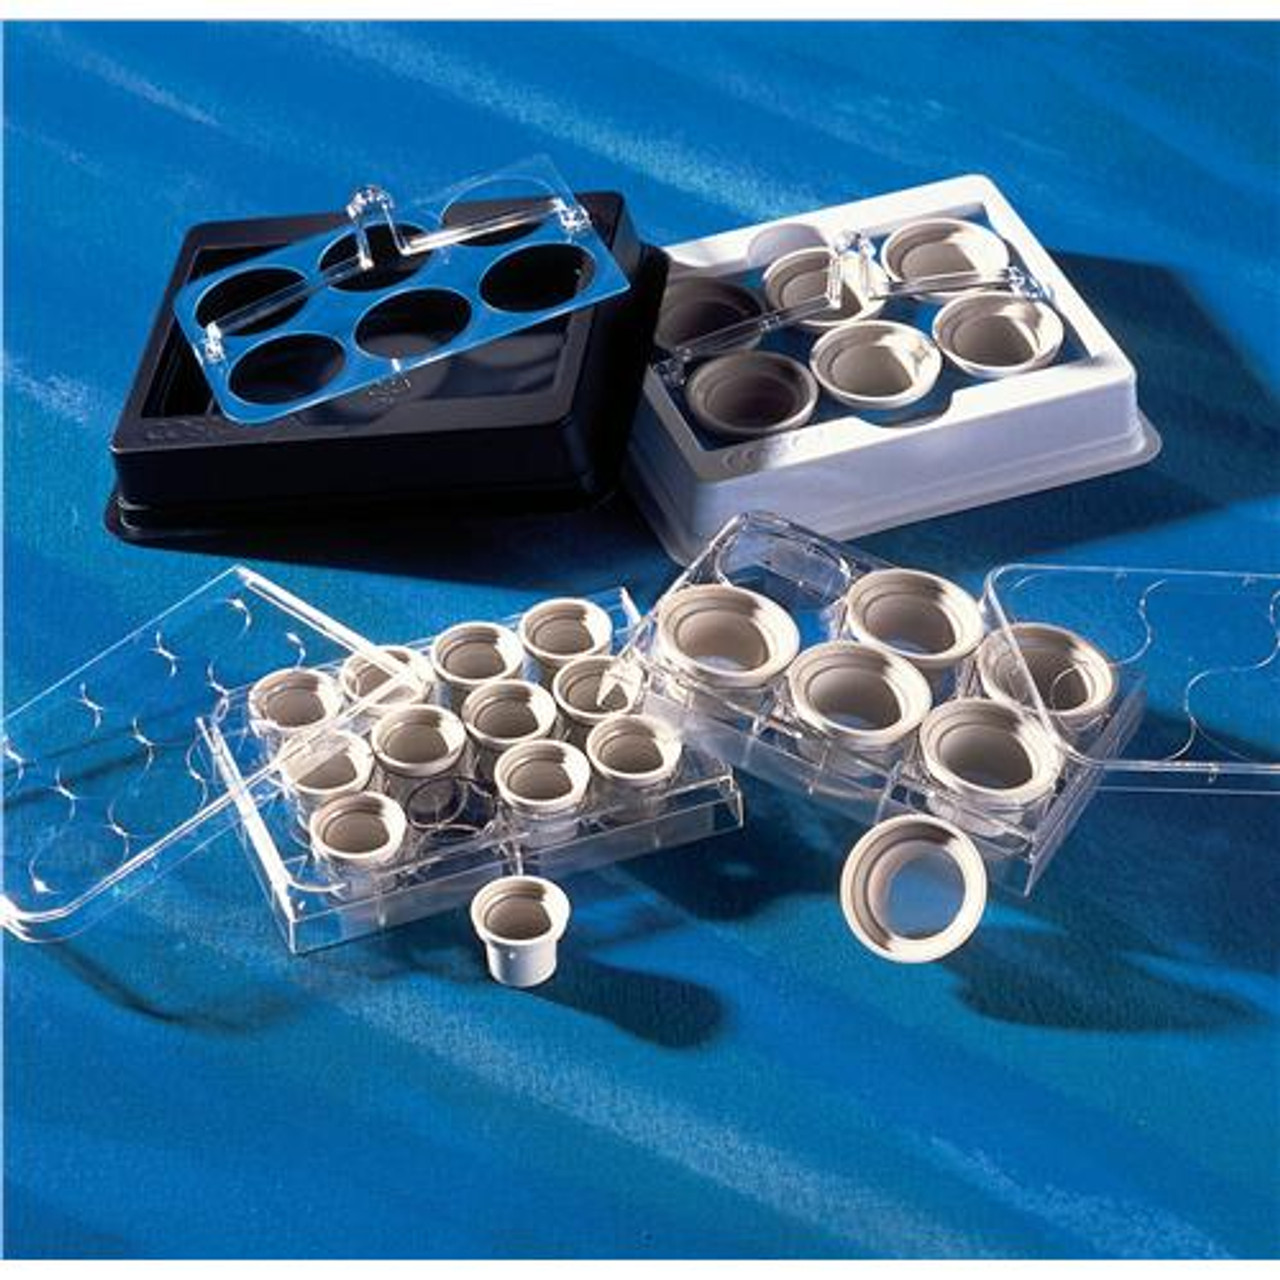 Pack of 1000 Non-Sterile Corning 9301 Spin-X Centrifuge Tube Insert without Membrane